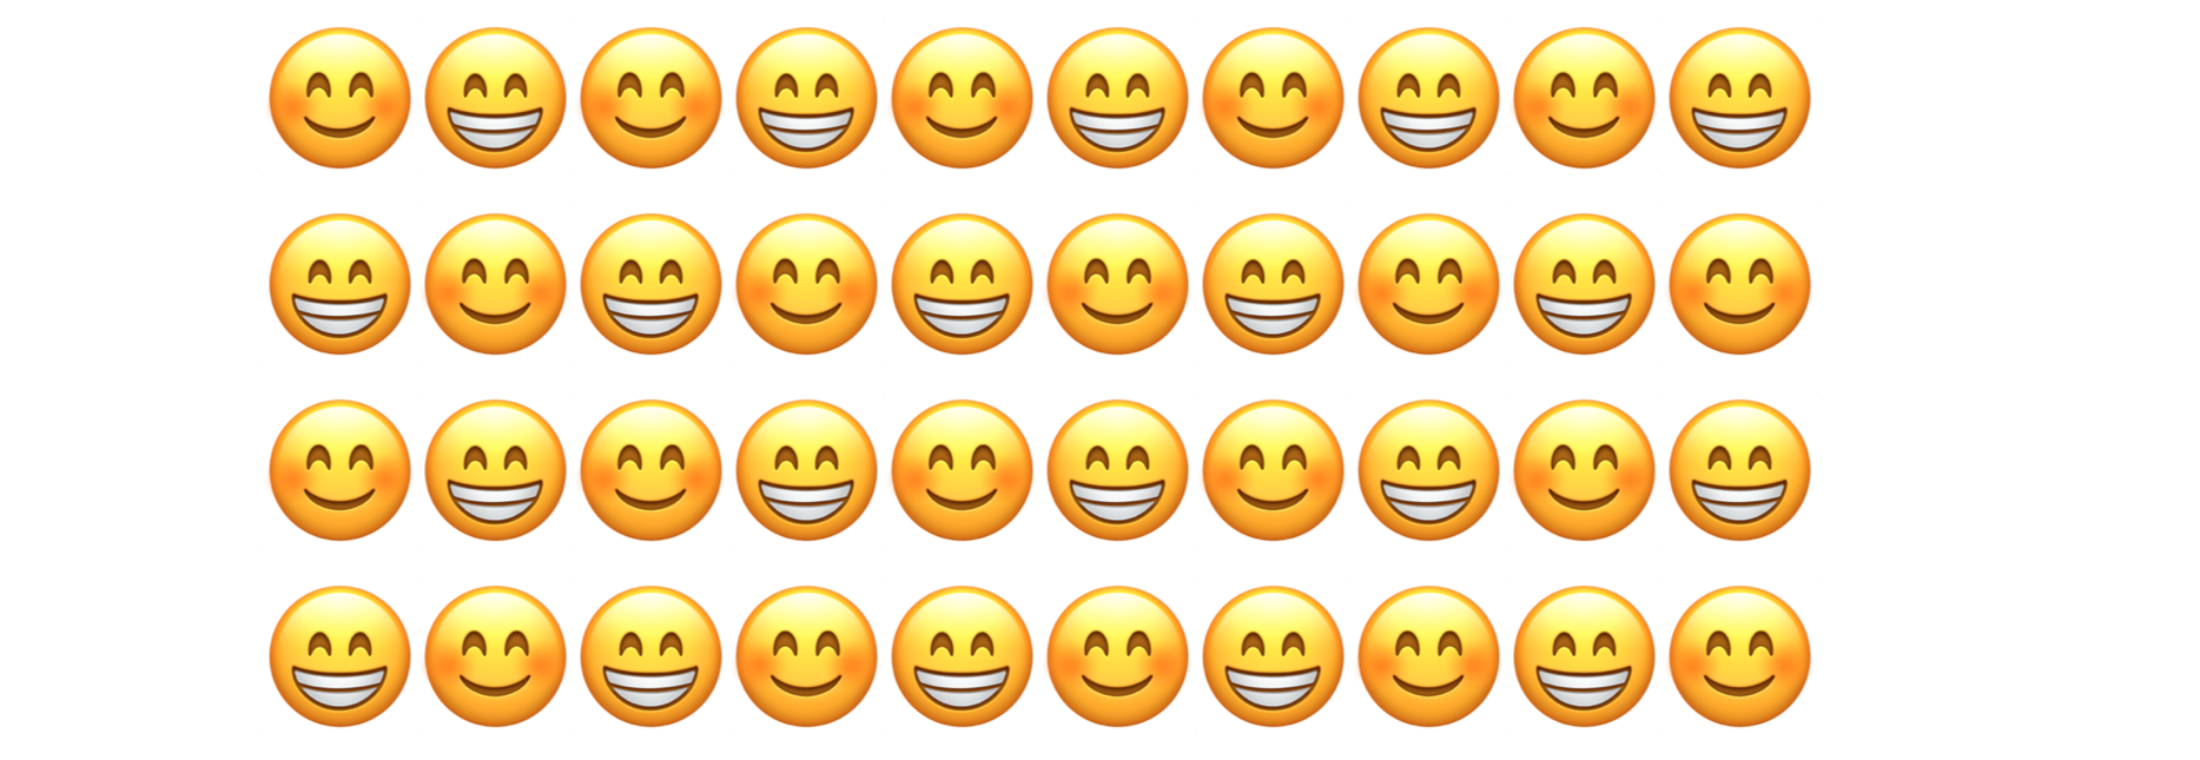 The Happiest Places On Earth (According To Emojis)